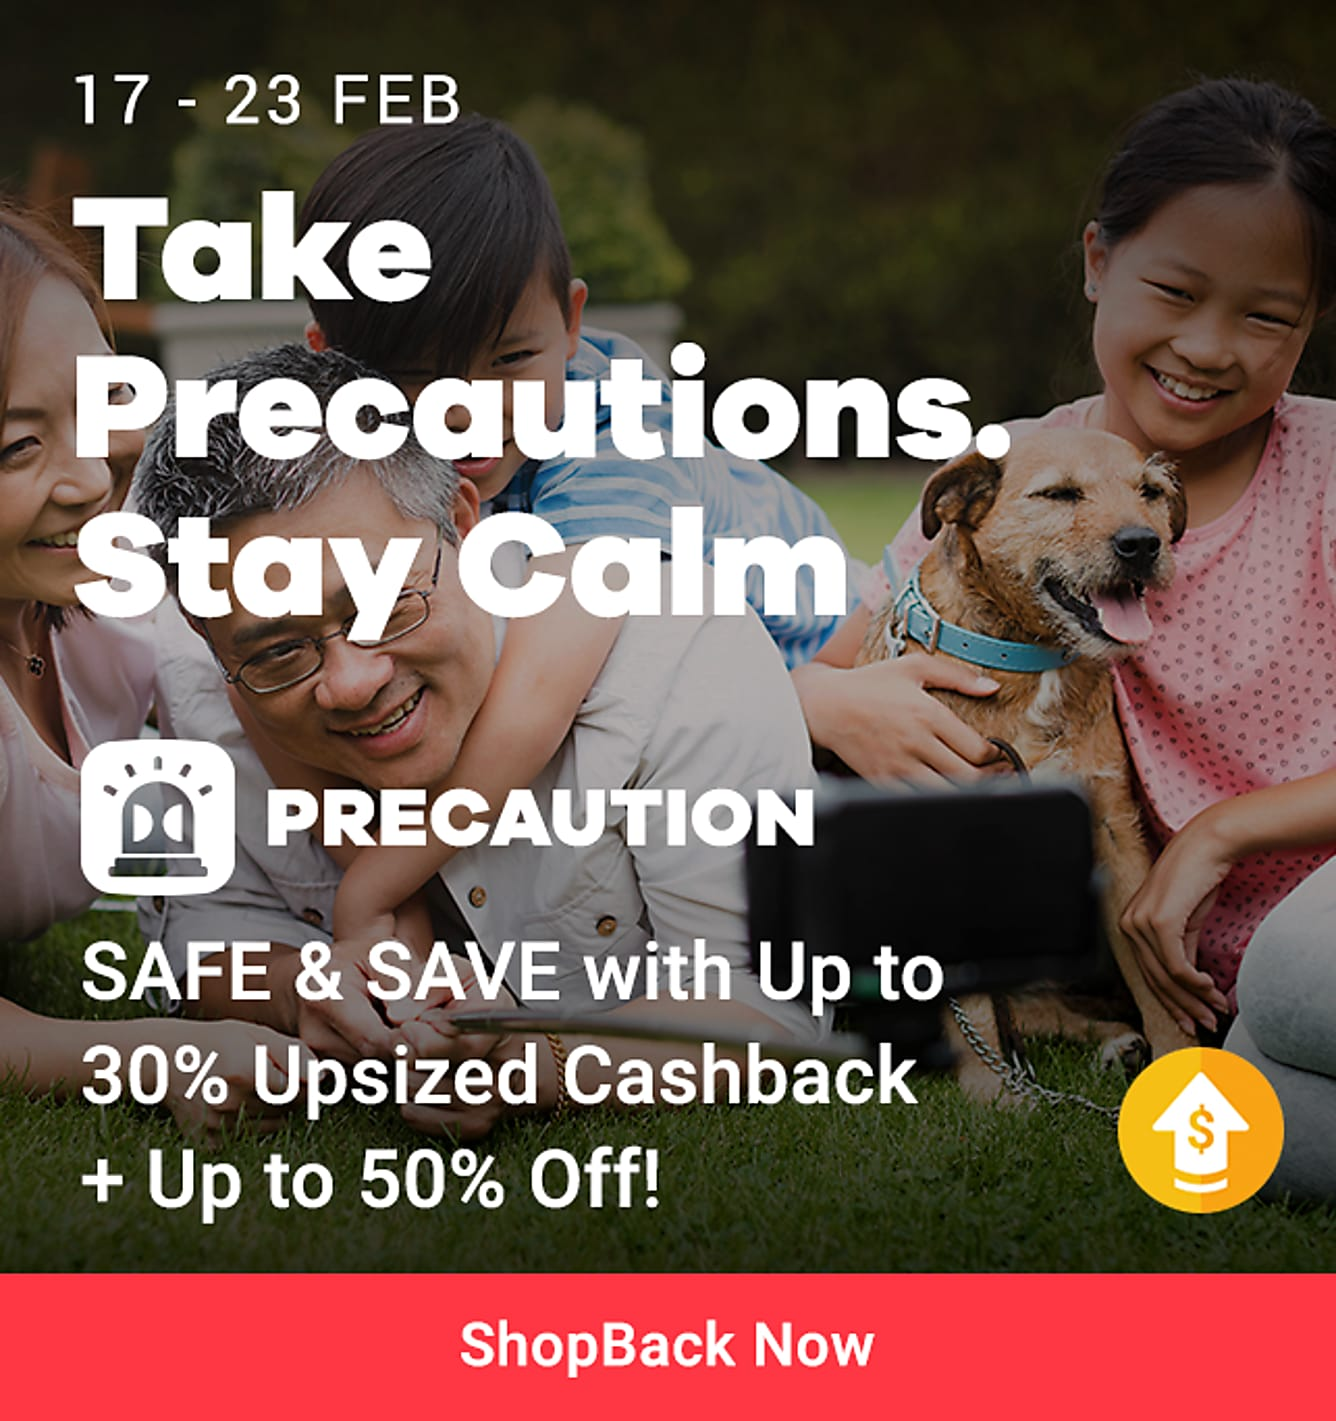 precaution campaign safe & save up to 30% upsized cashback